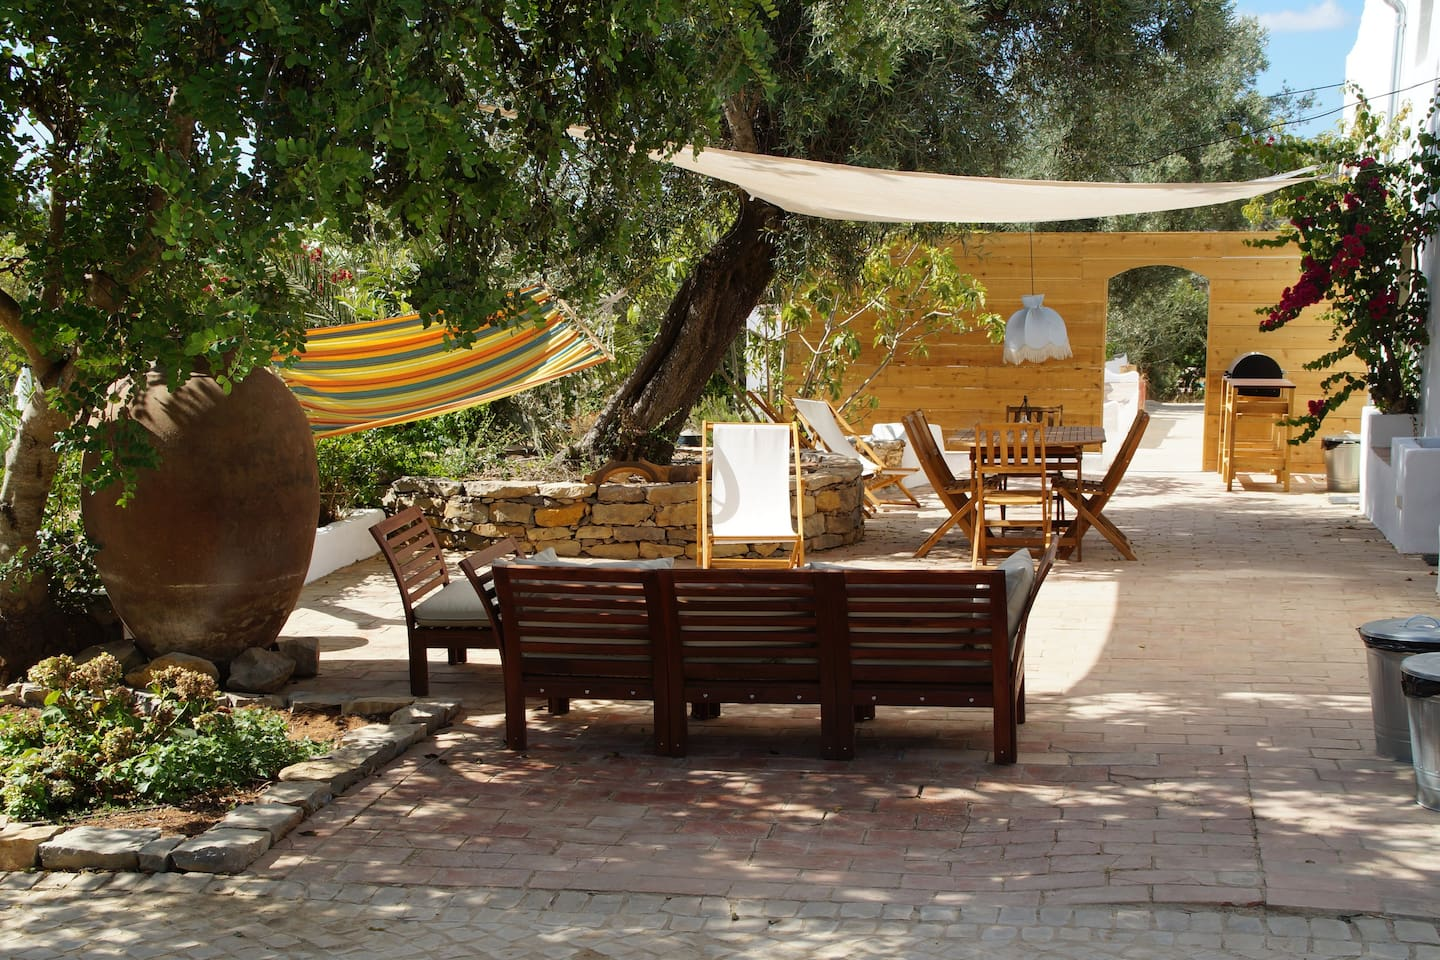 Private terrace of Casa Estavel with hammock, loungeset, dining table, BBQ and outside shower.